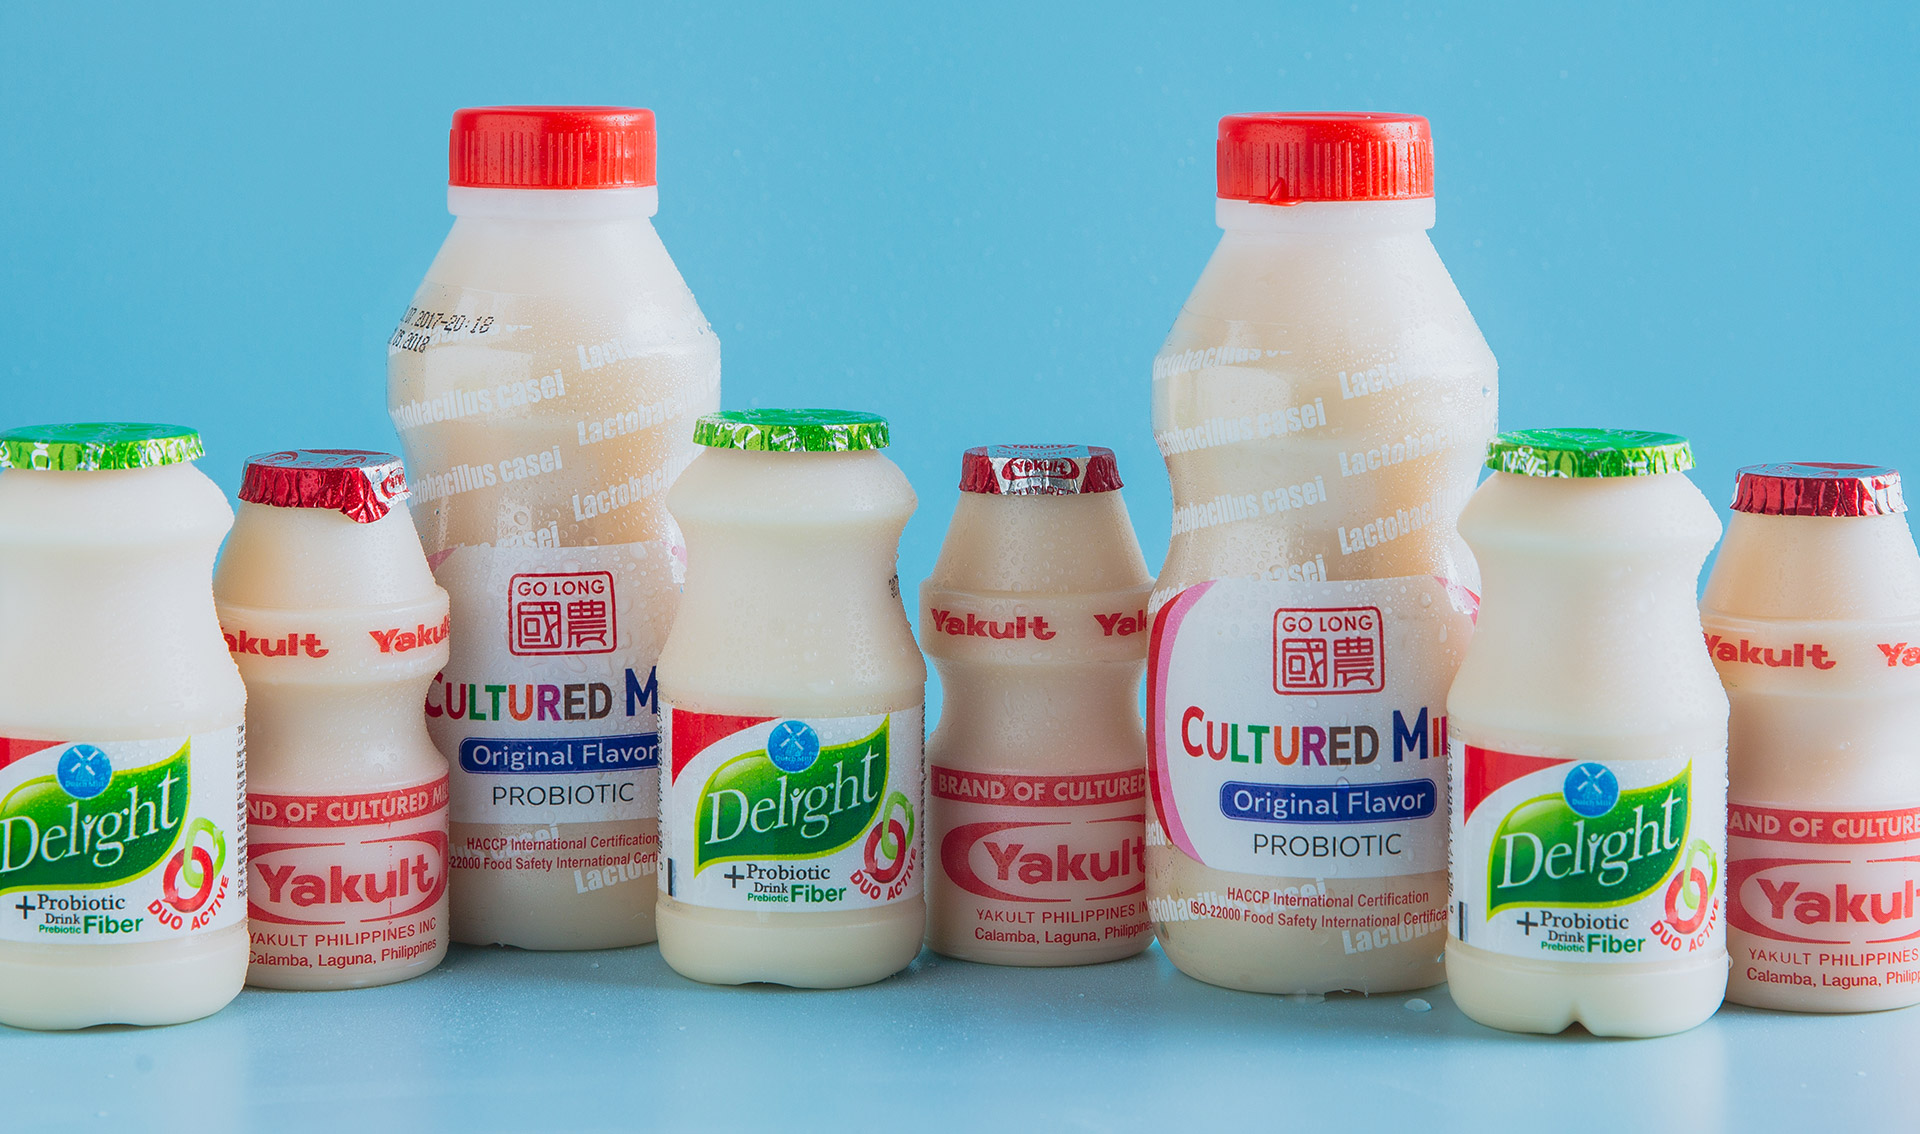 Dairy clipart probiotic. Taste test is yakult